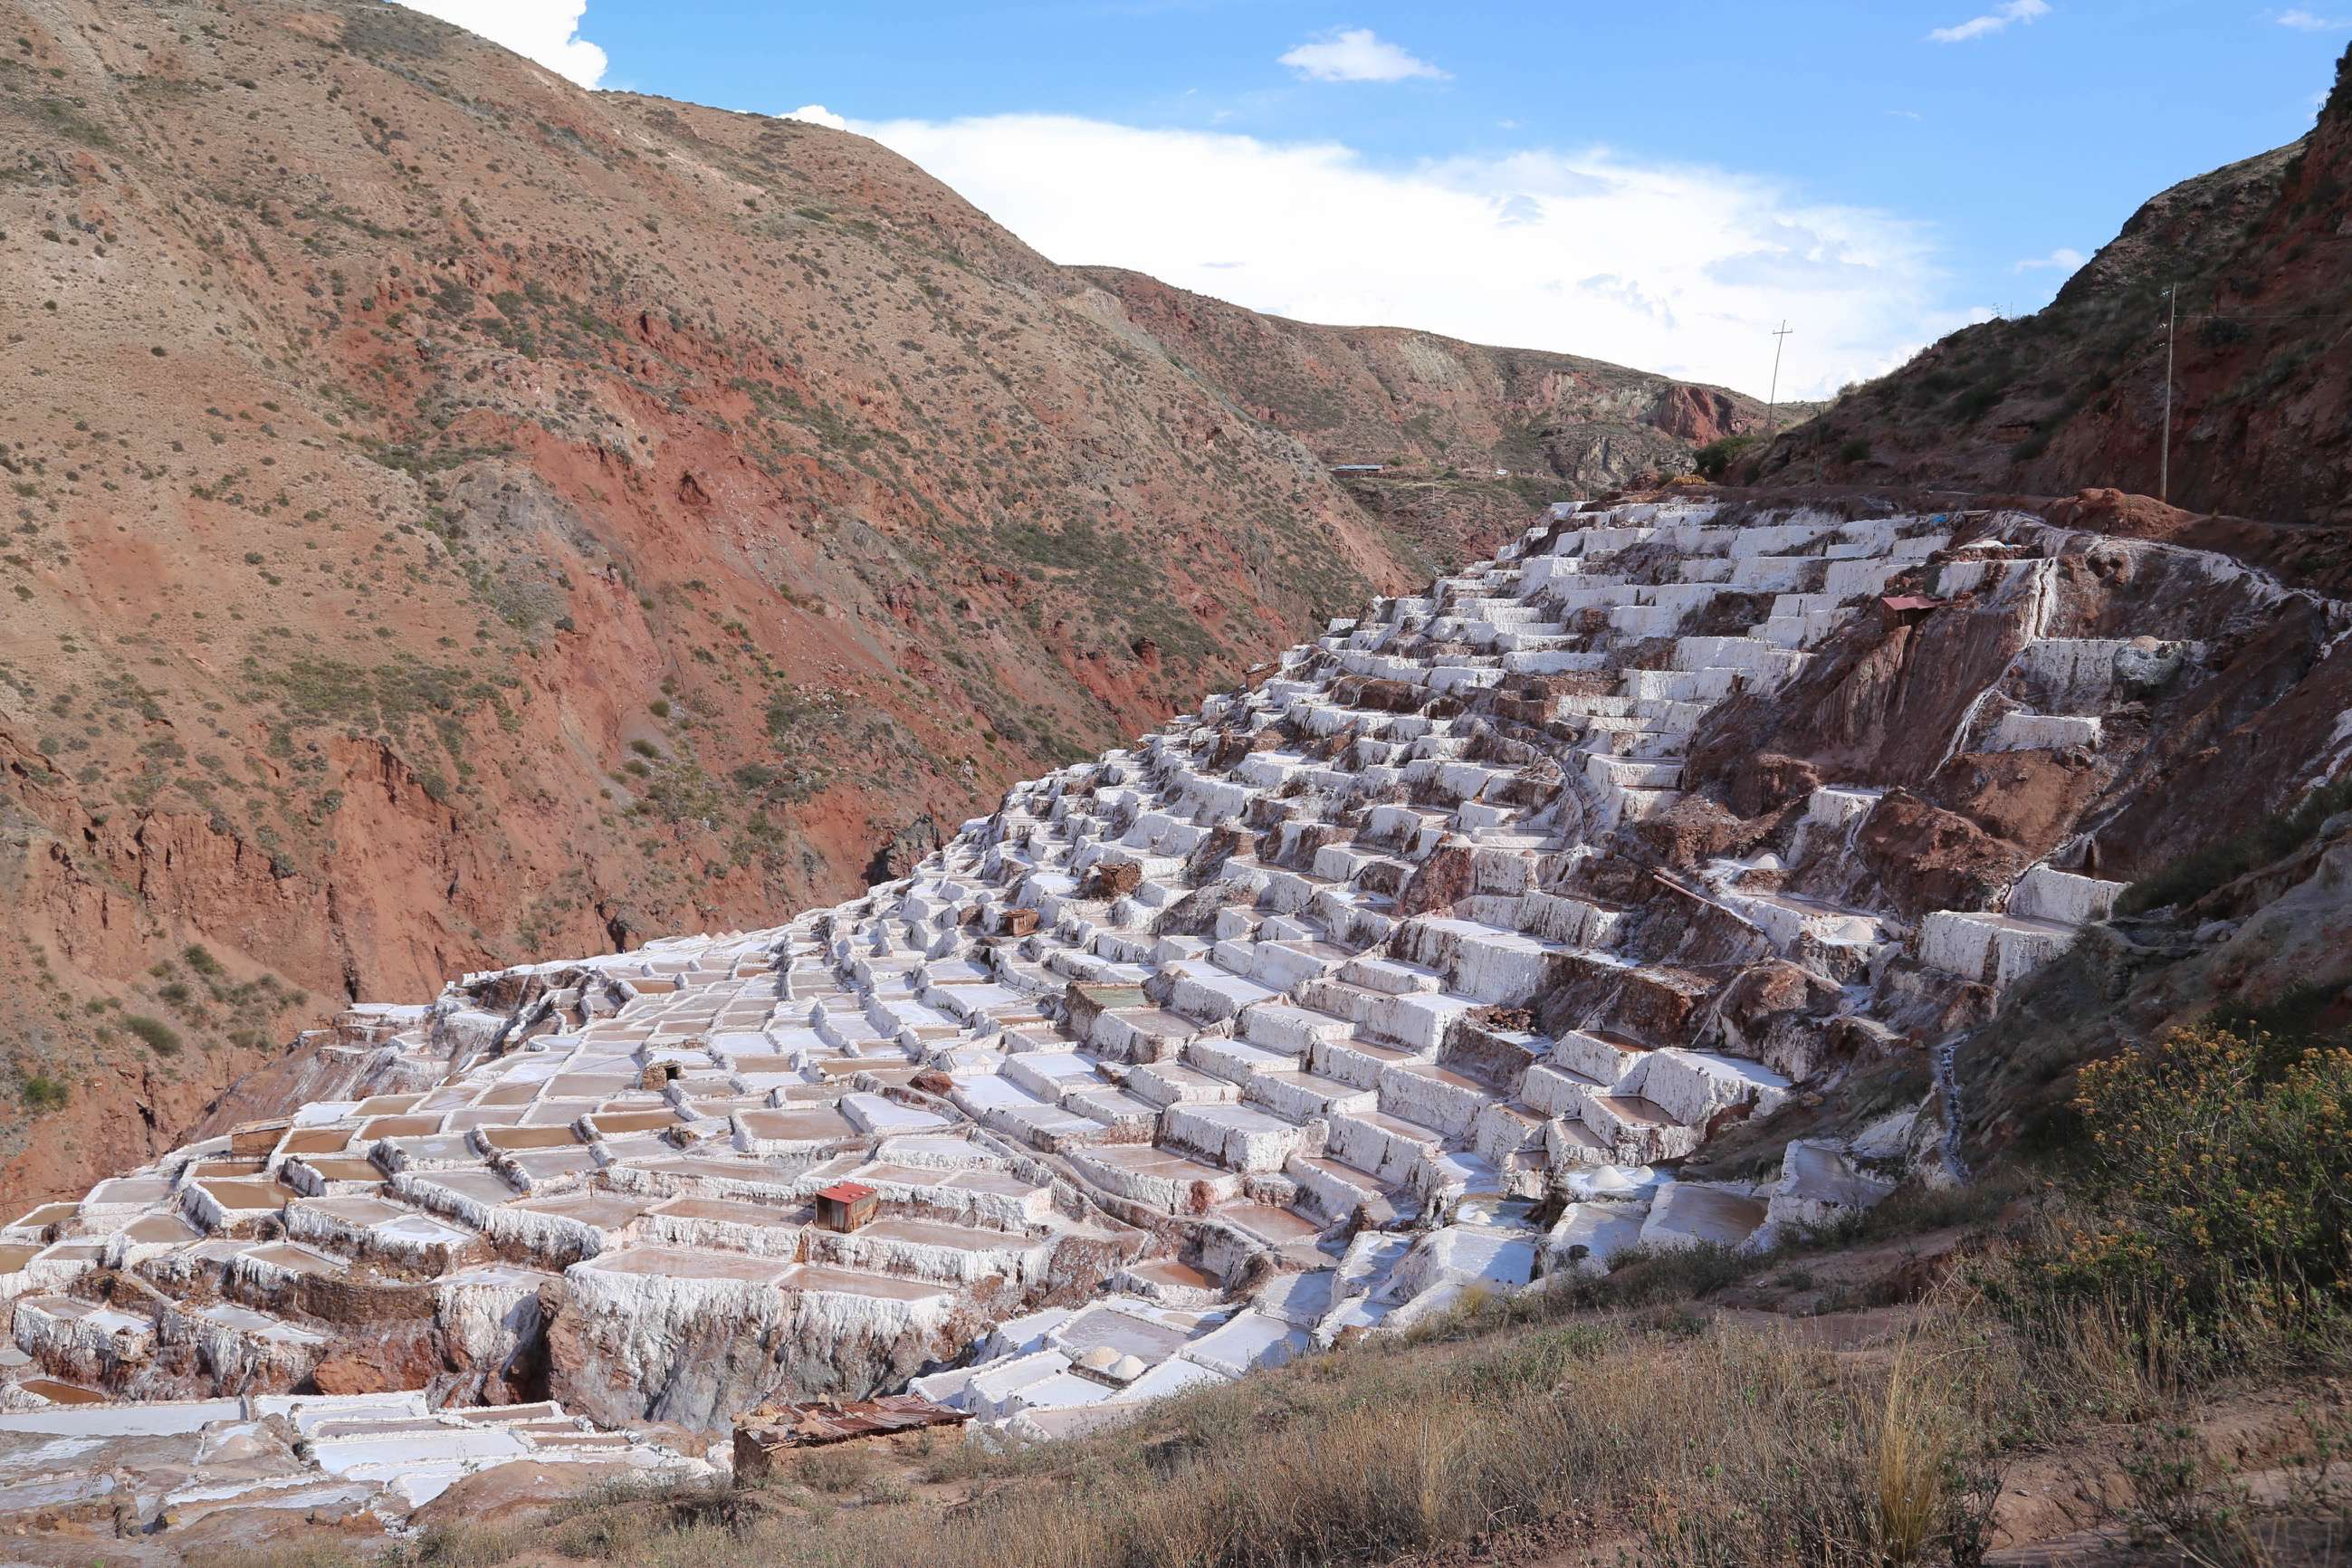 Before there was an Inca Empire in Peru, these salt works at Maras have been producing this essential compound.